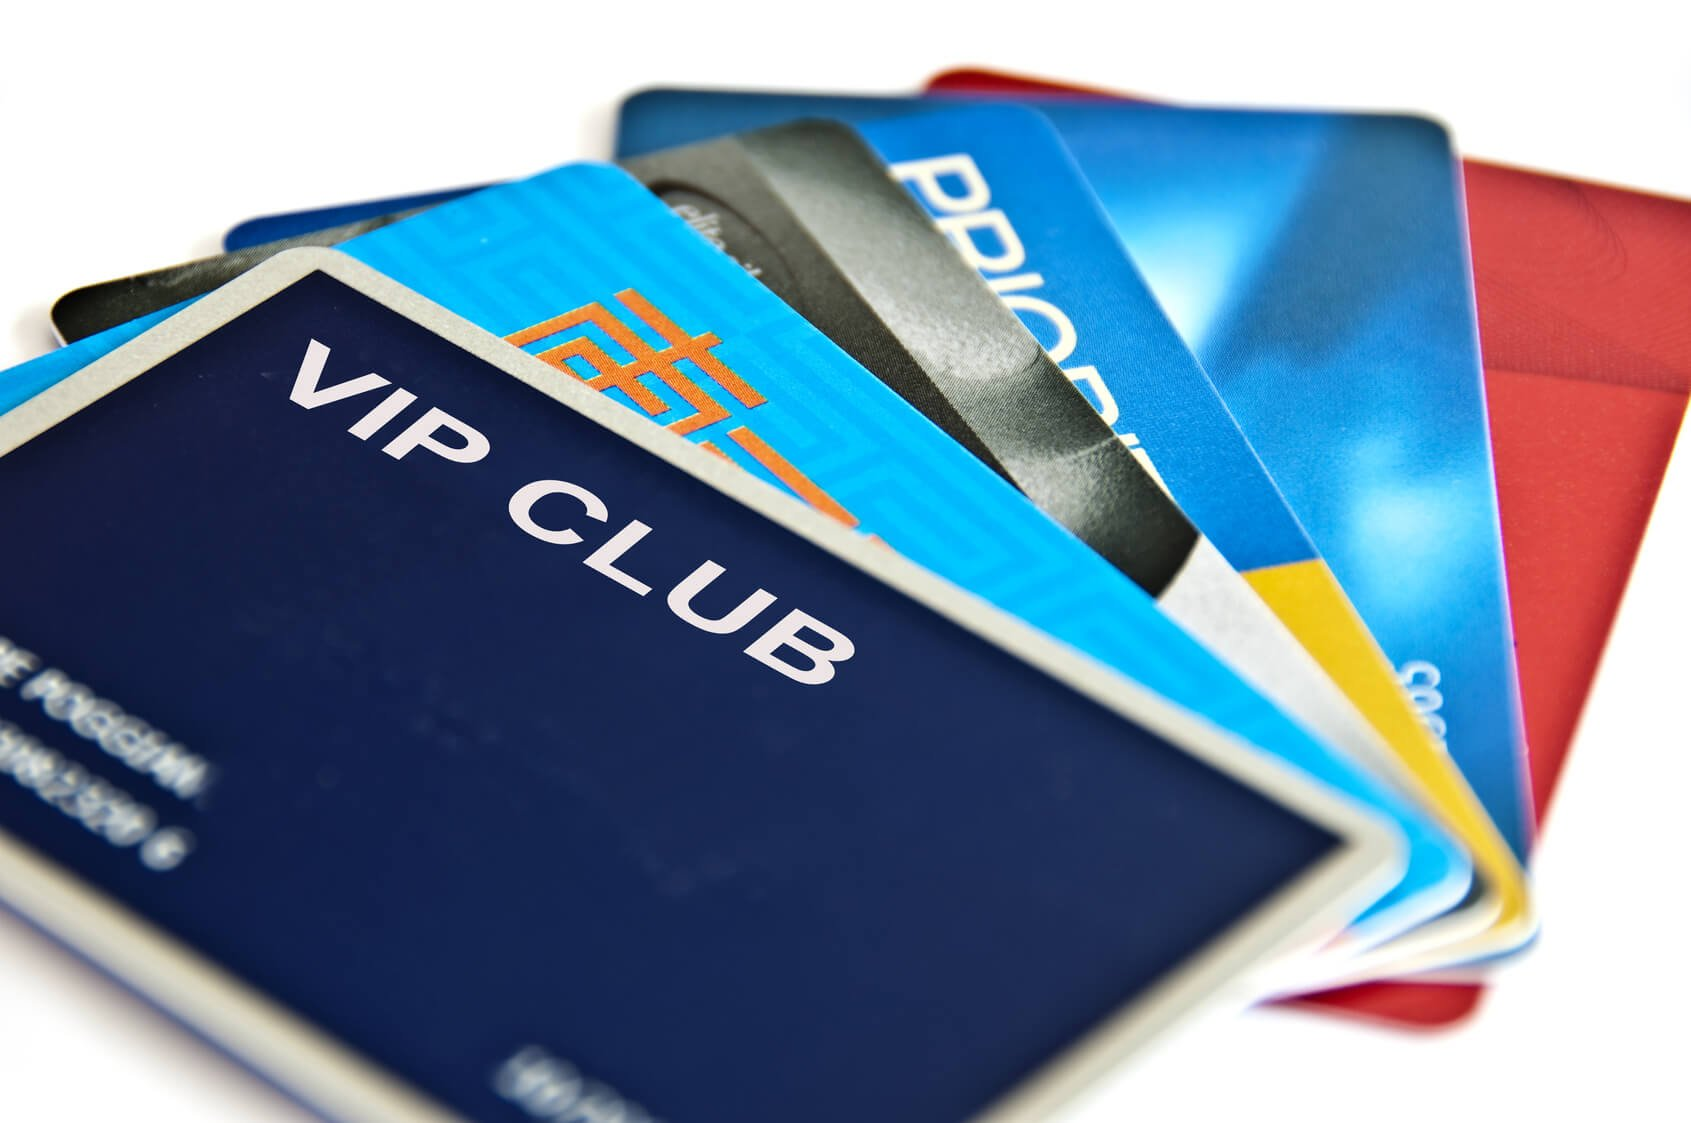 Types of plastic cards